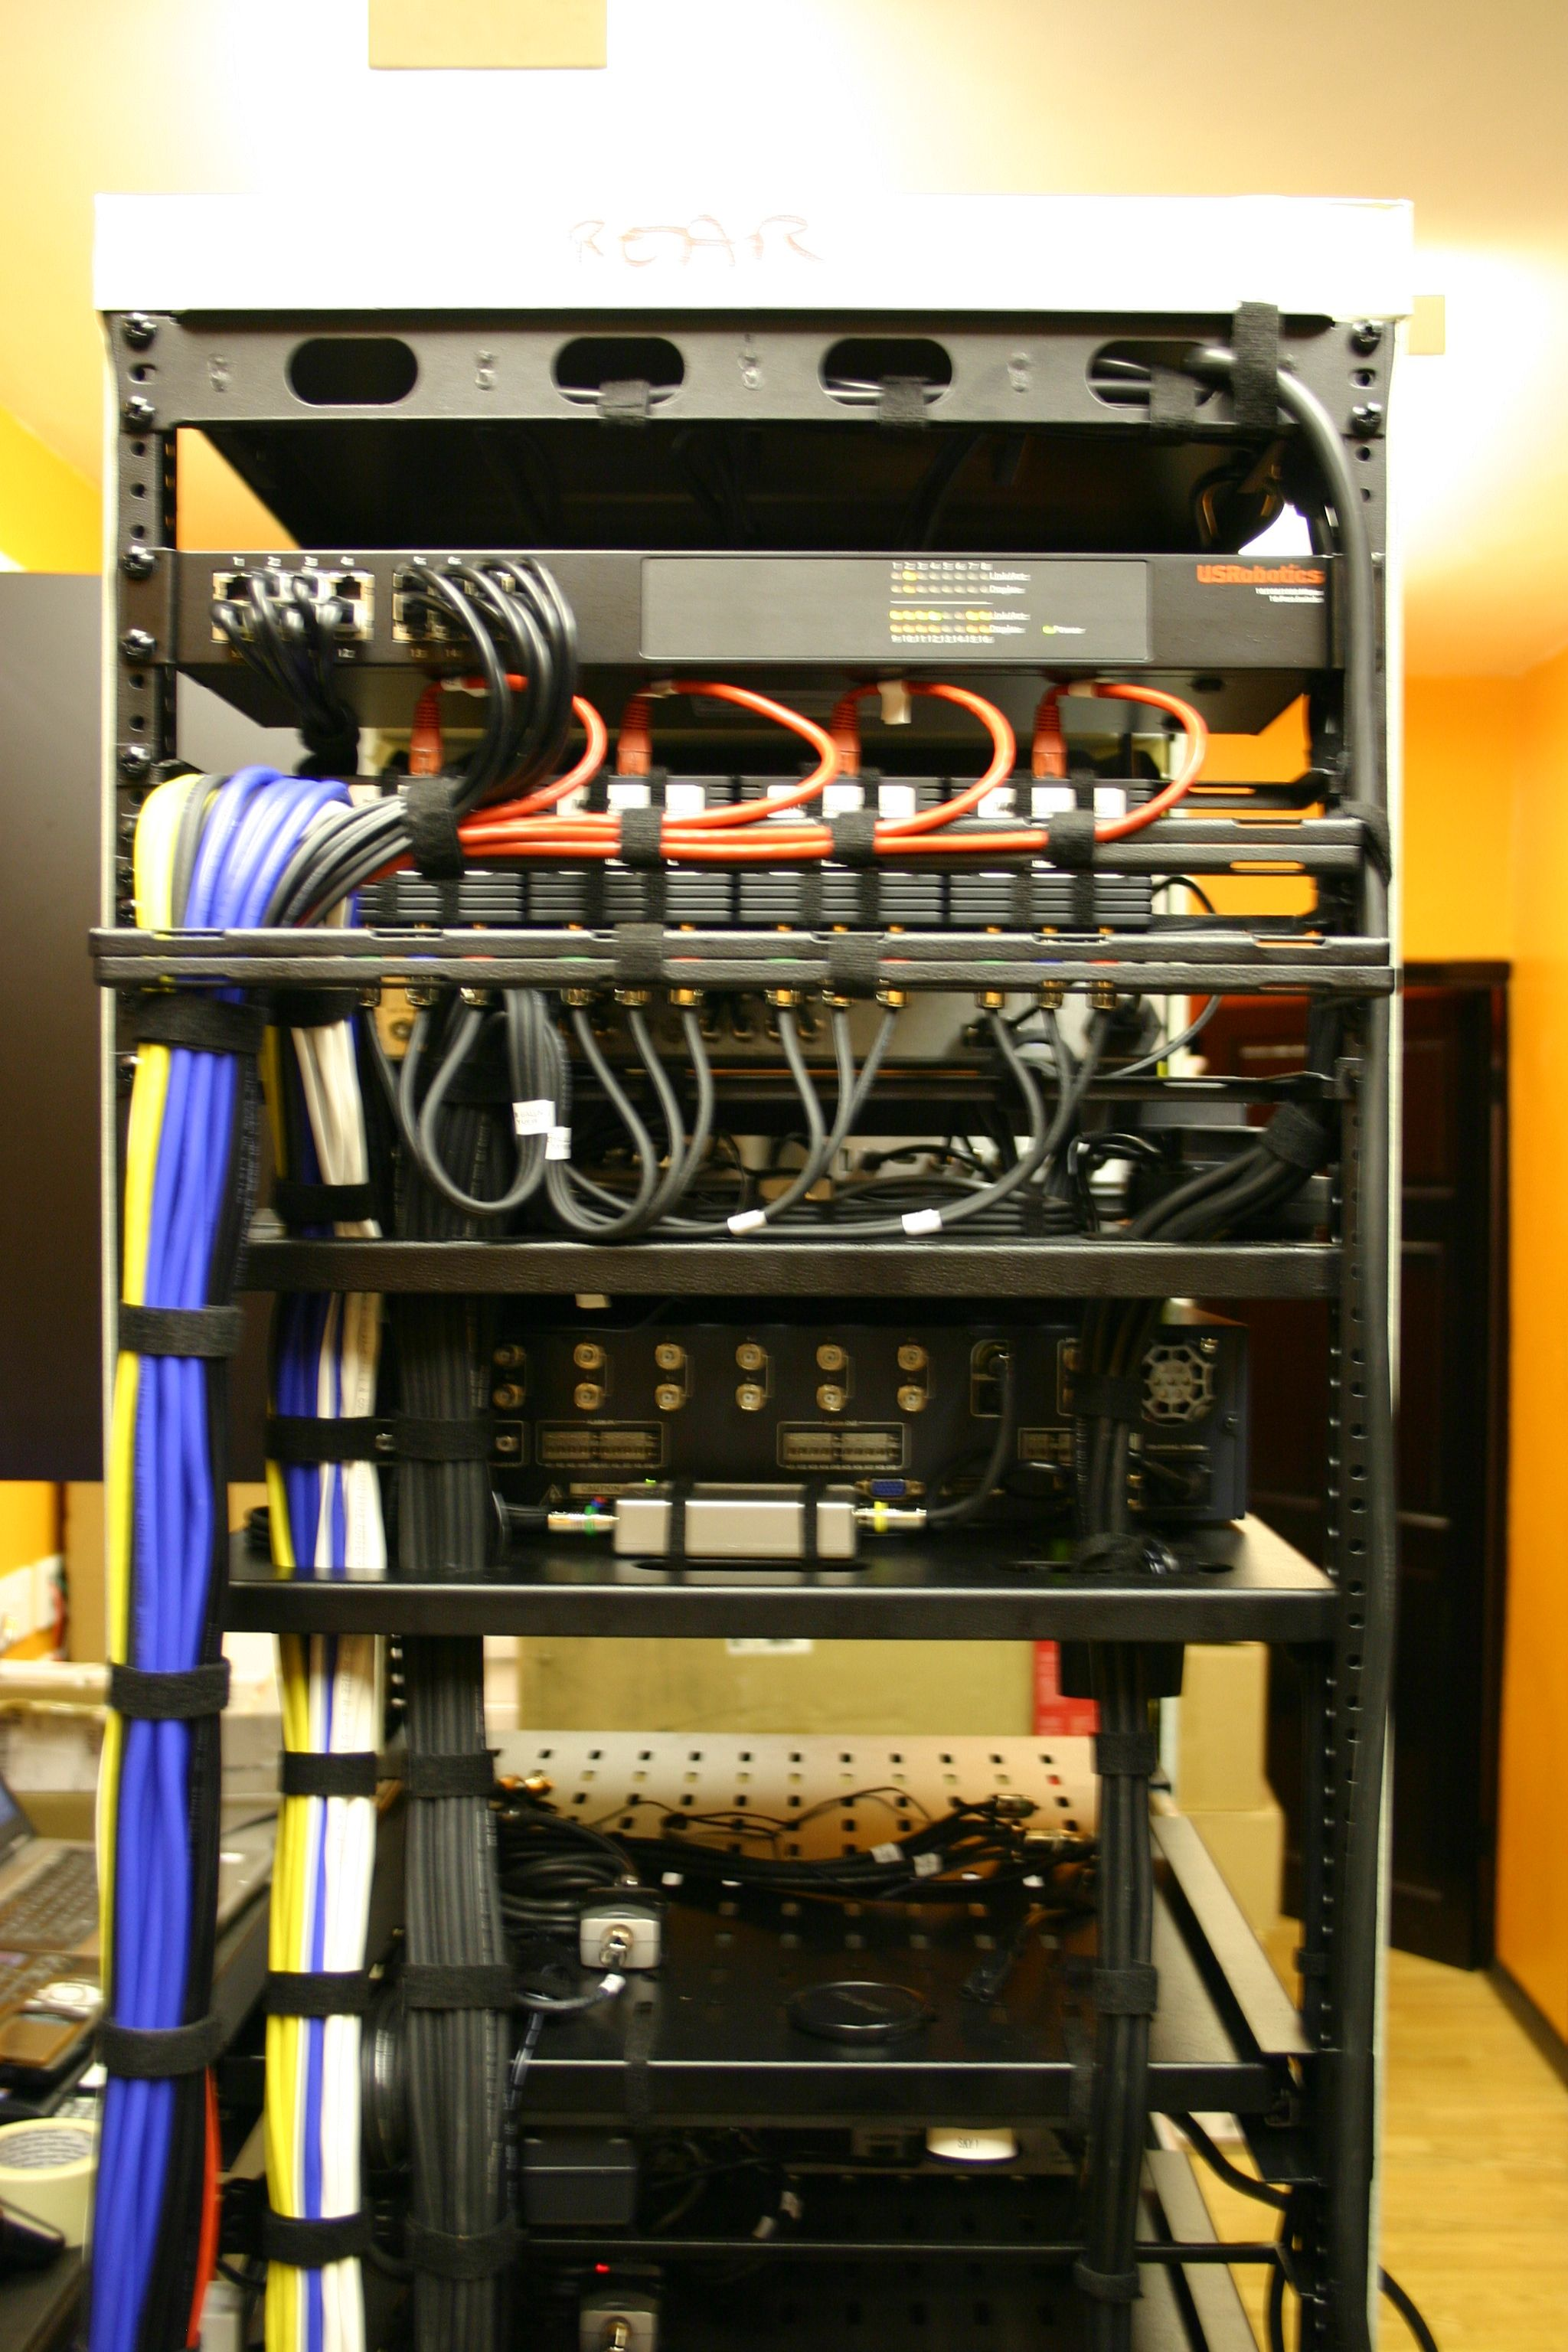 hight resolution of av racks showcase hot racks in 2019 cable management cable structured wiring cabinet for network and a v